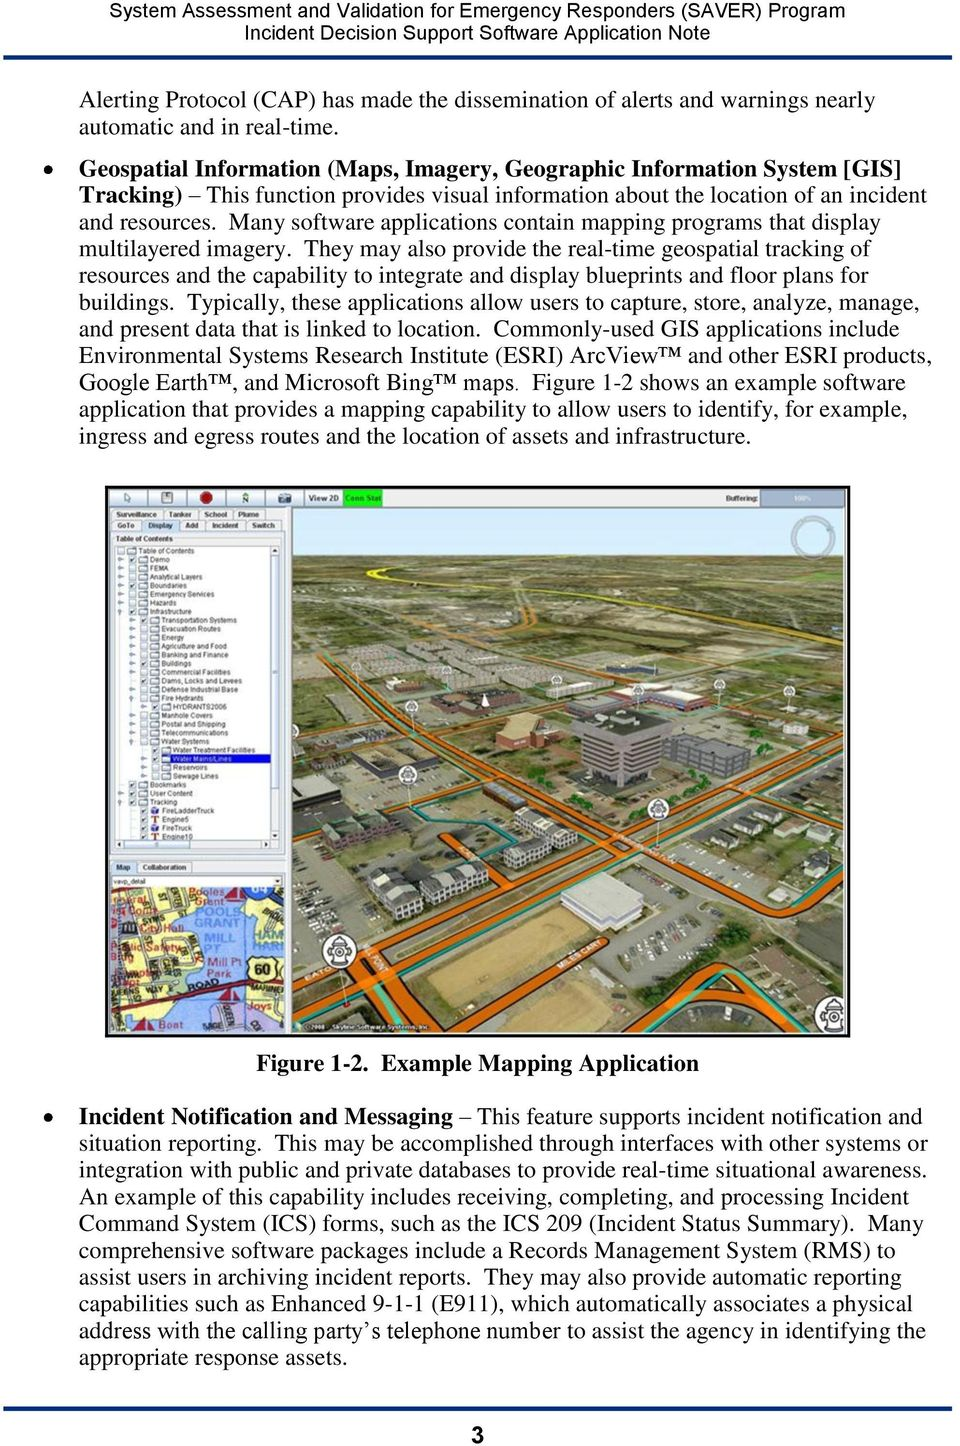 Many software applications contain mapping programs that display multilayered imagery.